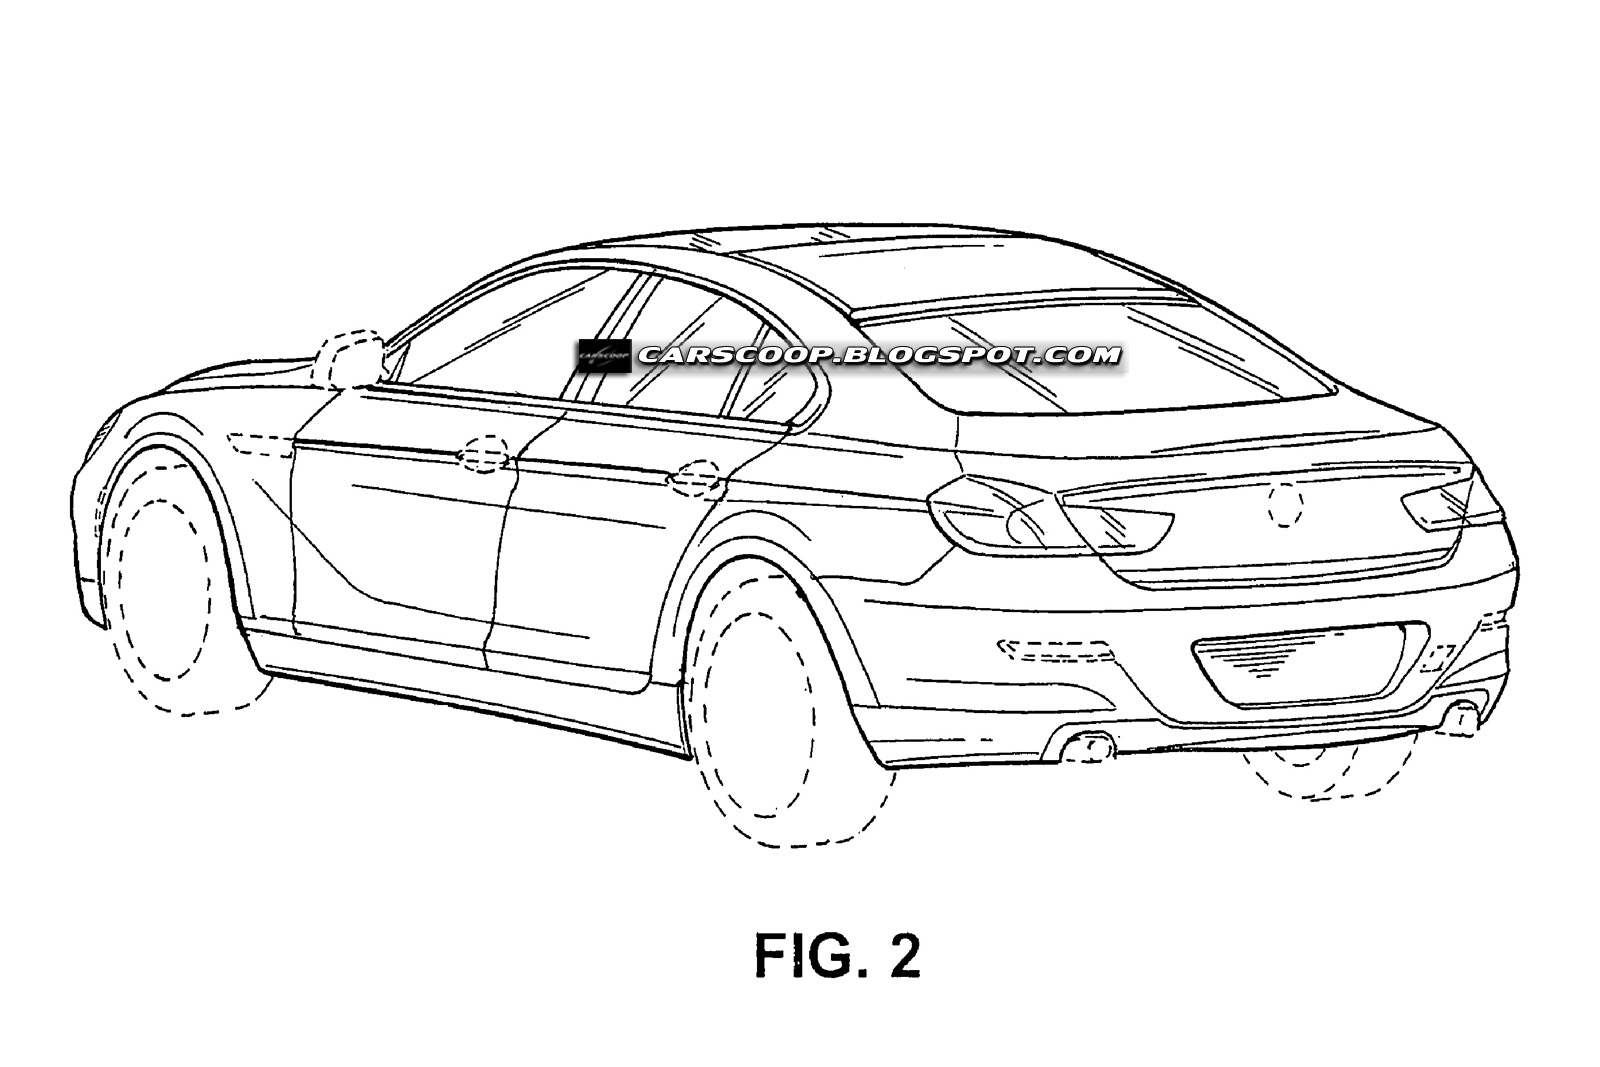 Official Patent Designs of BMW's New Four-Door Sports